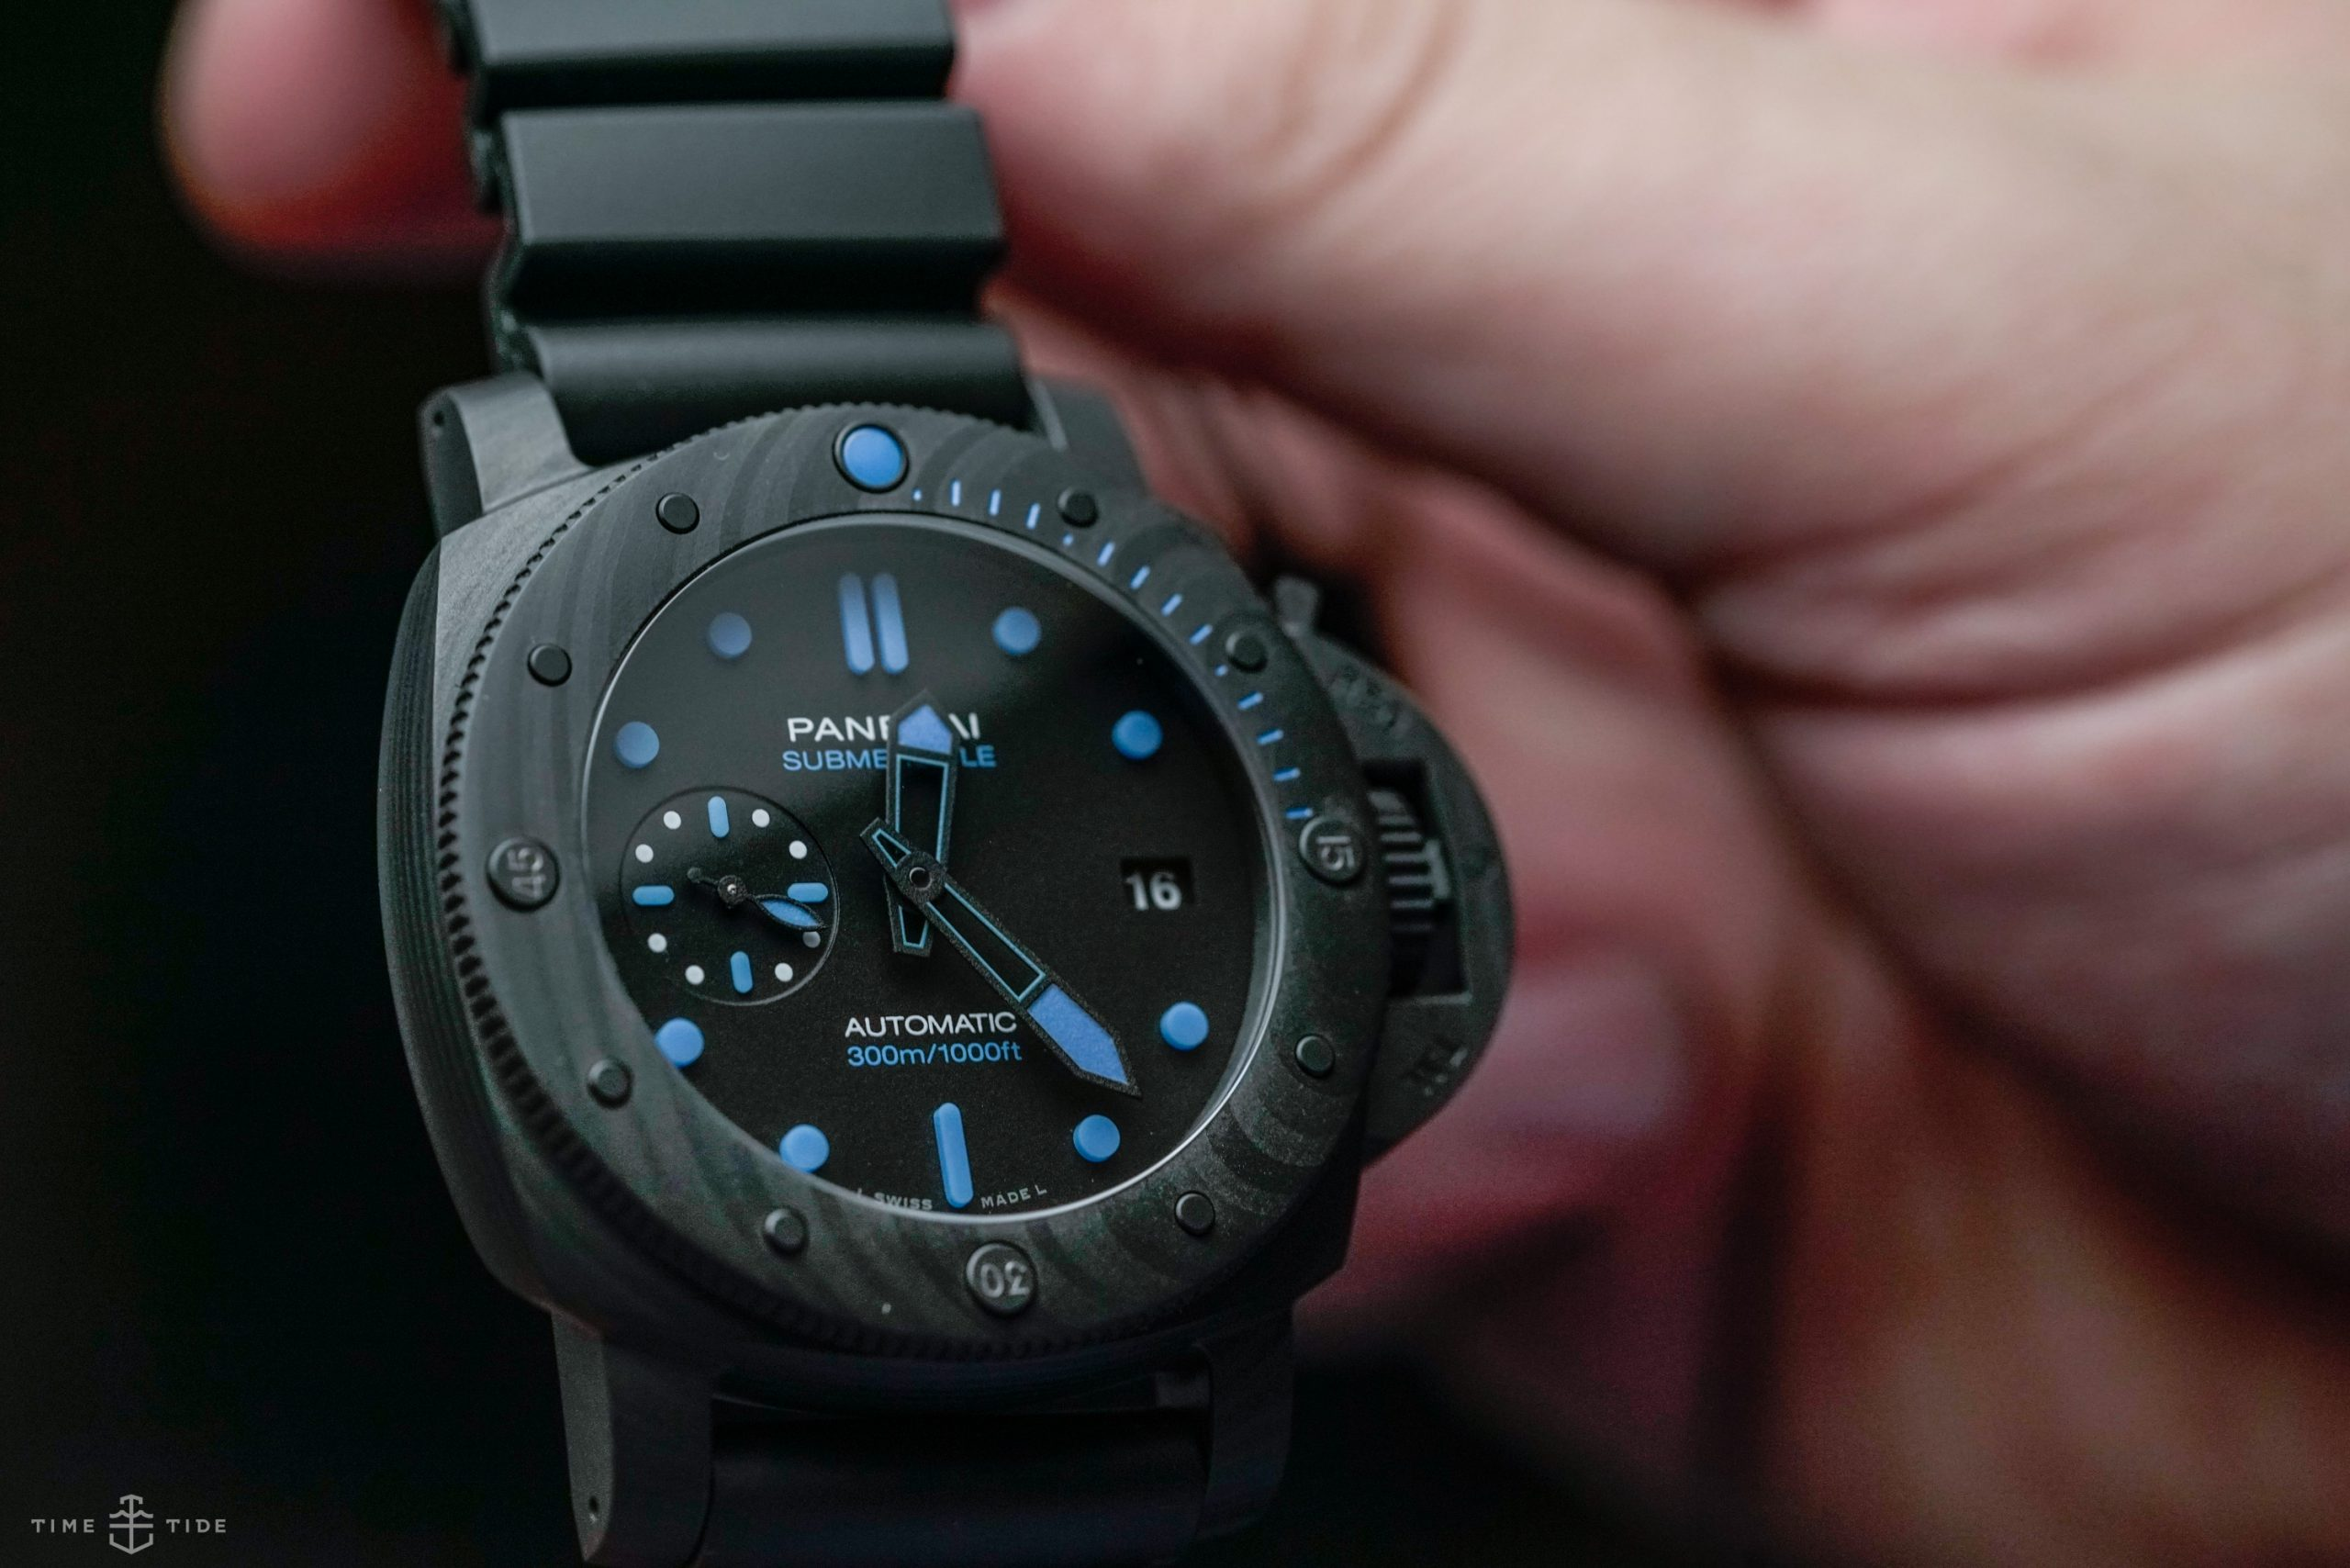 LIST: Andrew's top 3 picks from SIHH 2019 between $10k and $35k, including Panerai, IWC and Ulysse Nardin